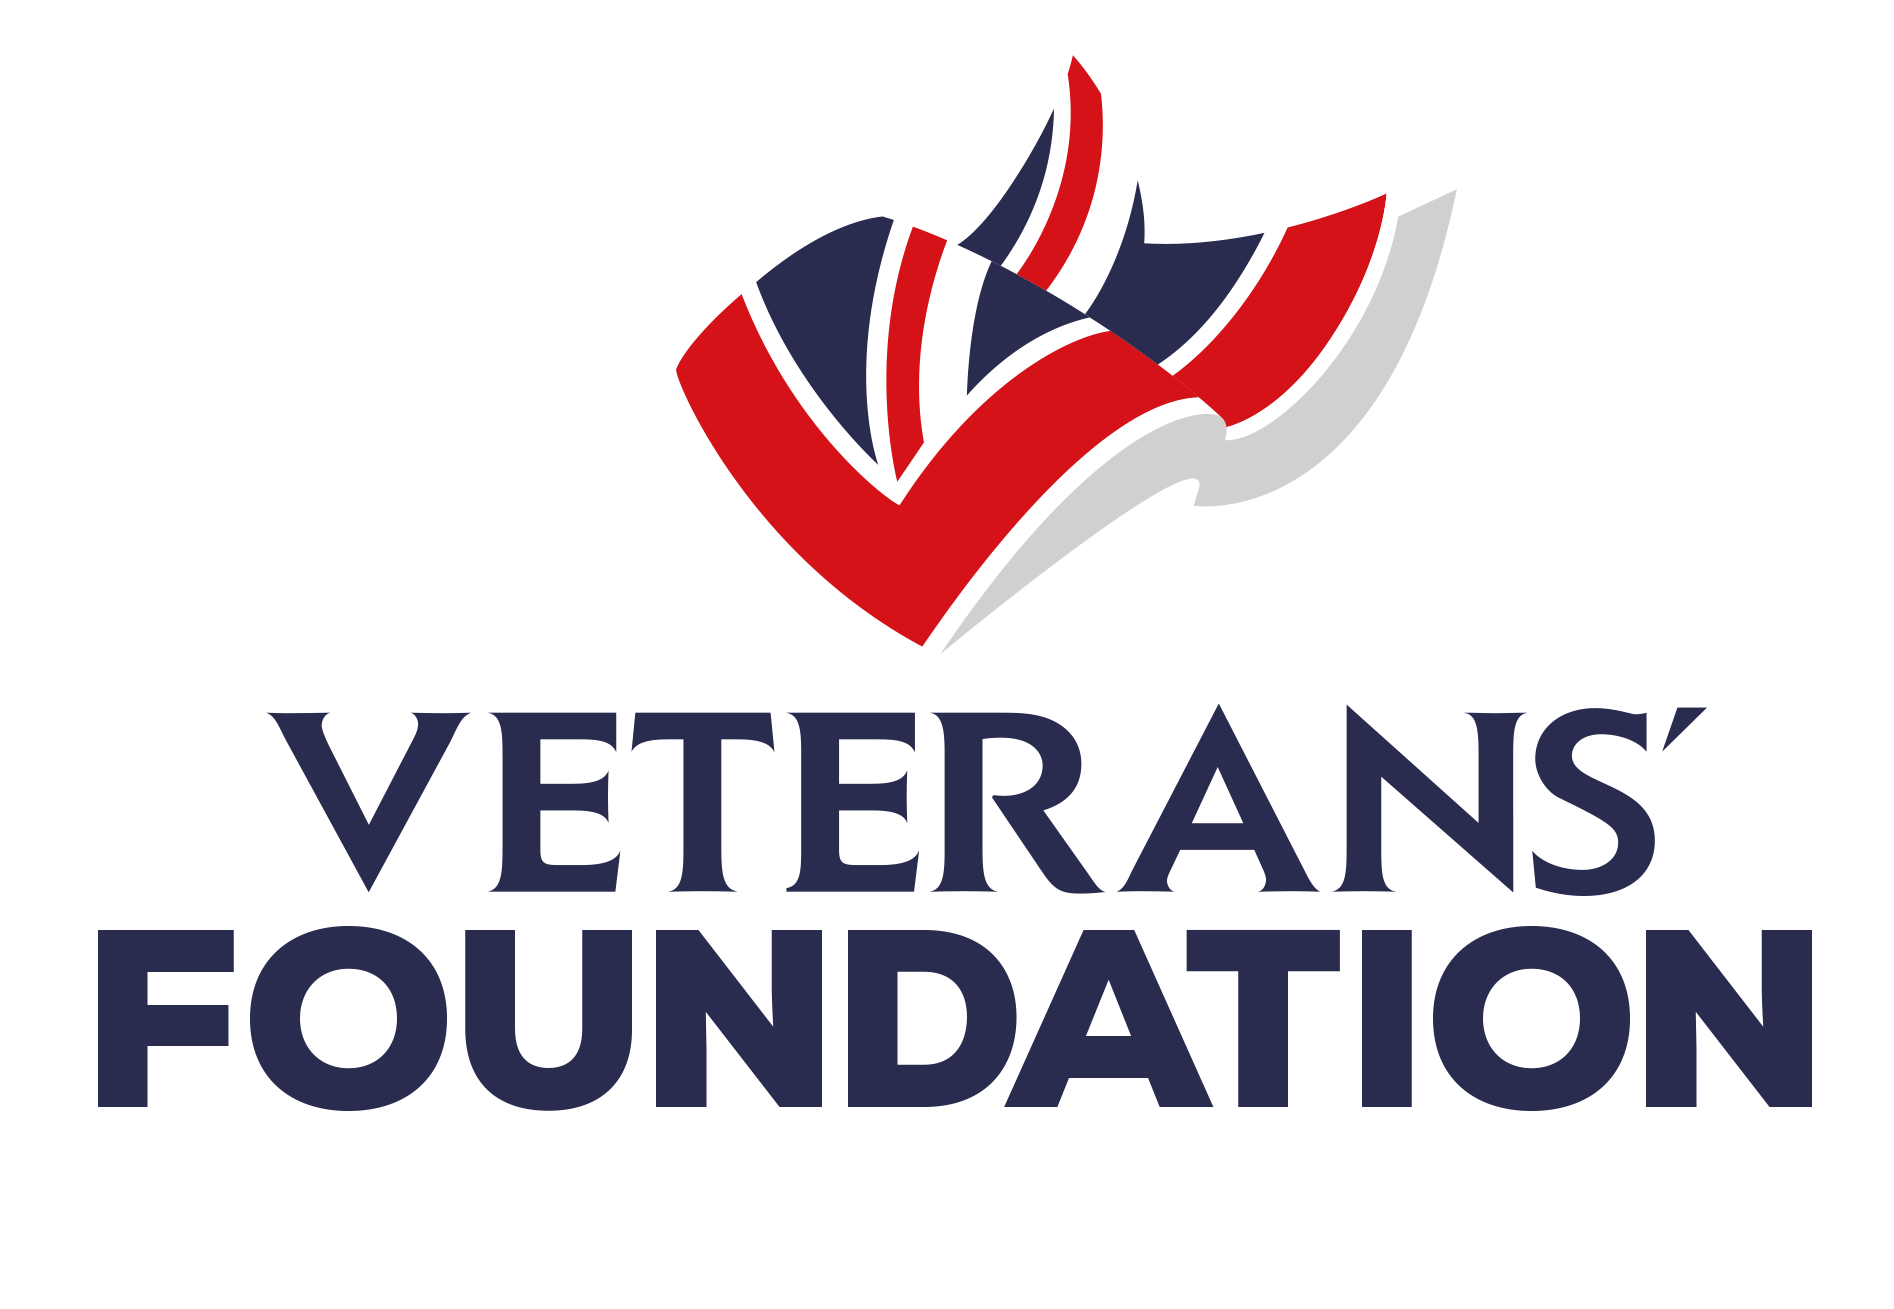 Veterans Foundation